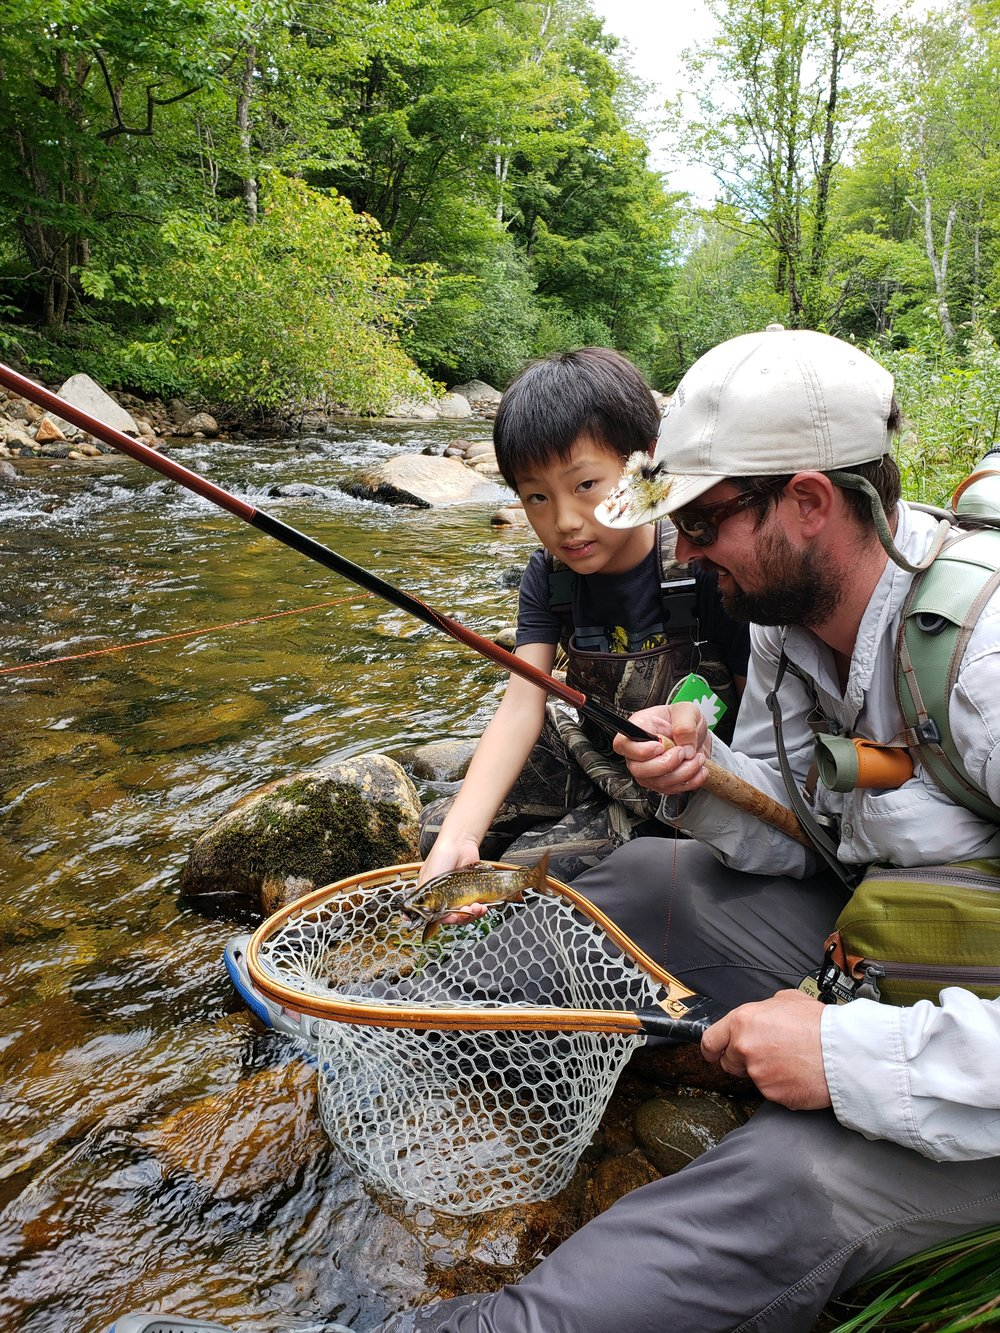 Hayden's first trout on the fly was a Buck wild brookie that ate an Elk Hair Caddis skaded using a Red brook Tenkara Rod.